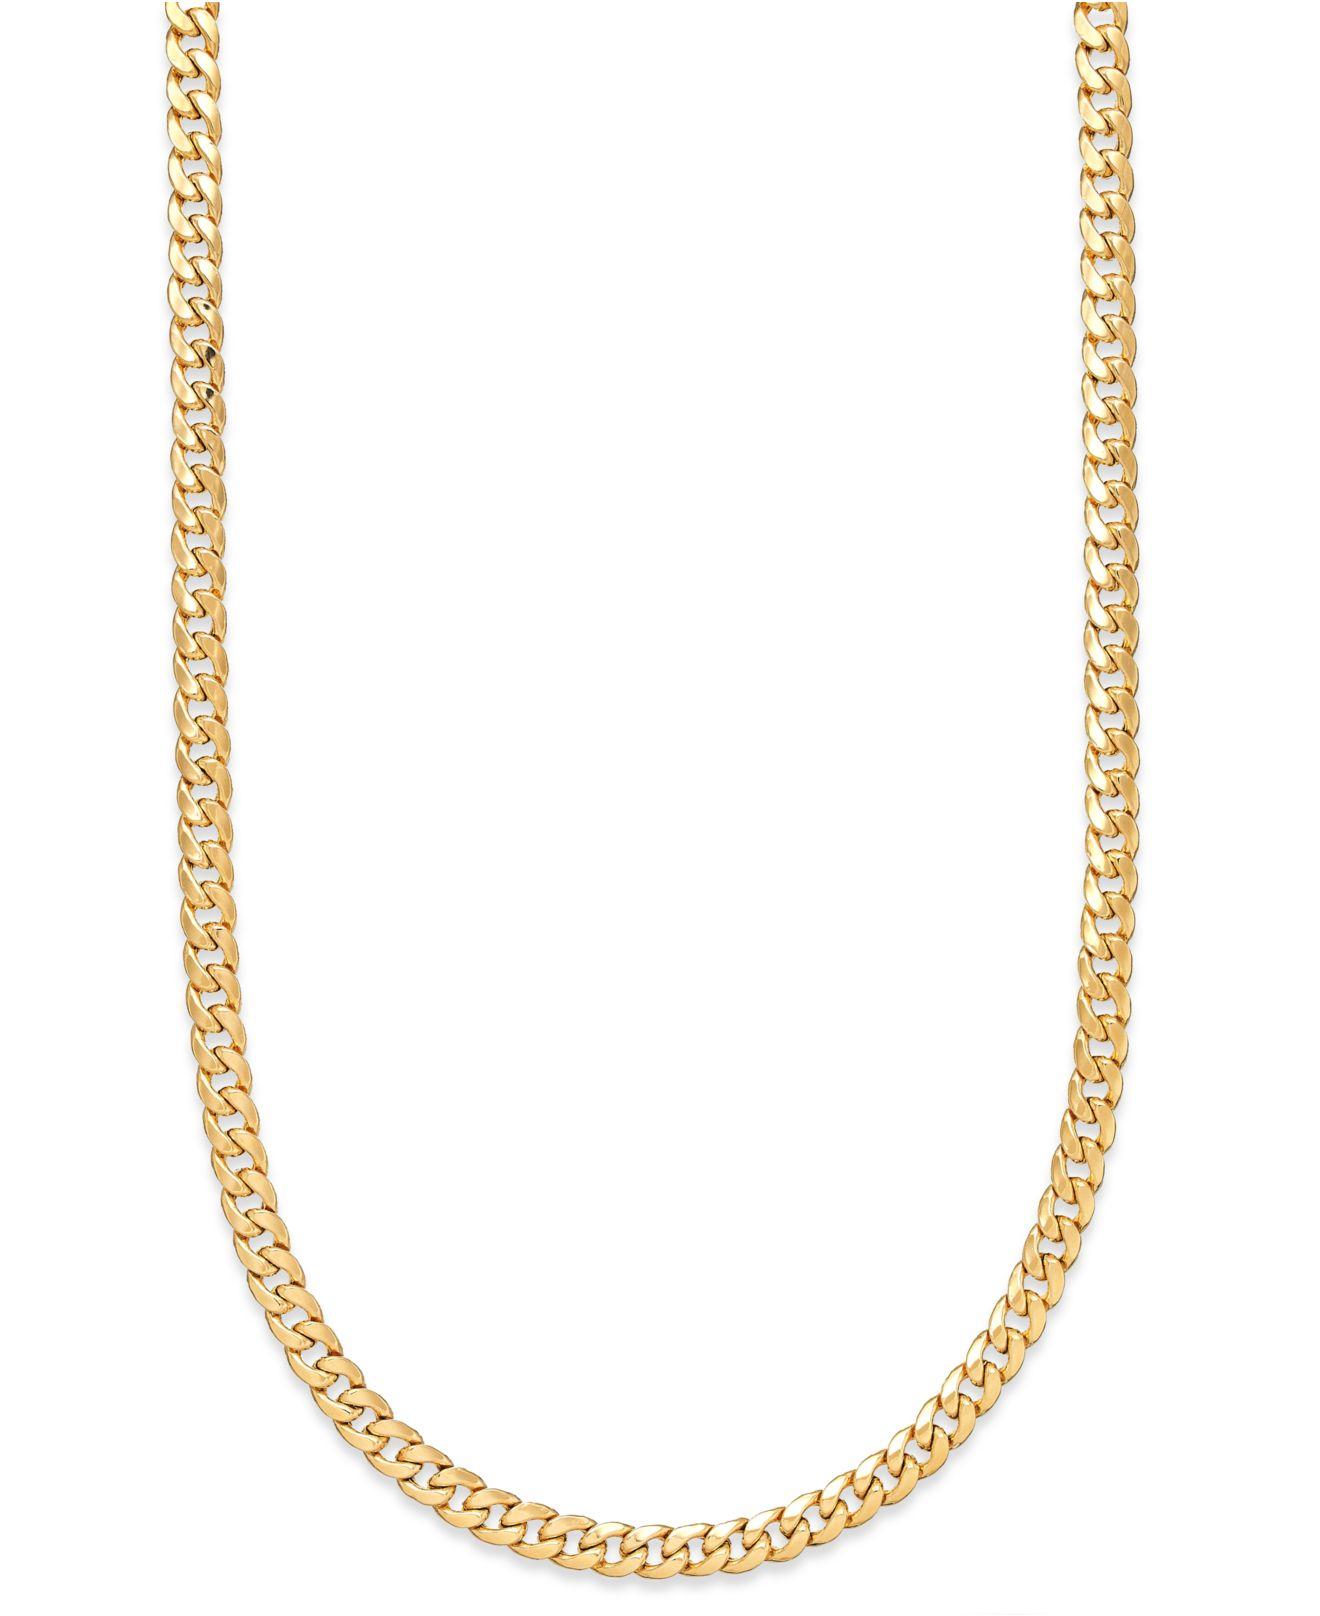 macy s 22 inch cuban link chain necklace 7mm in 14k gold